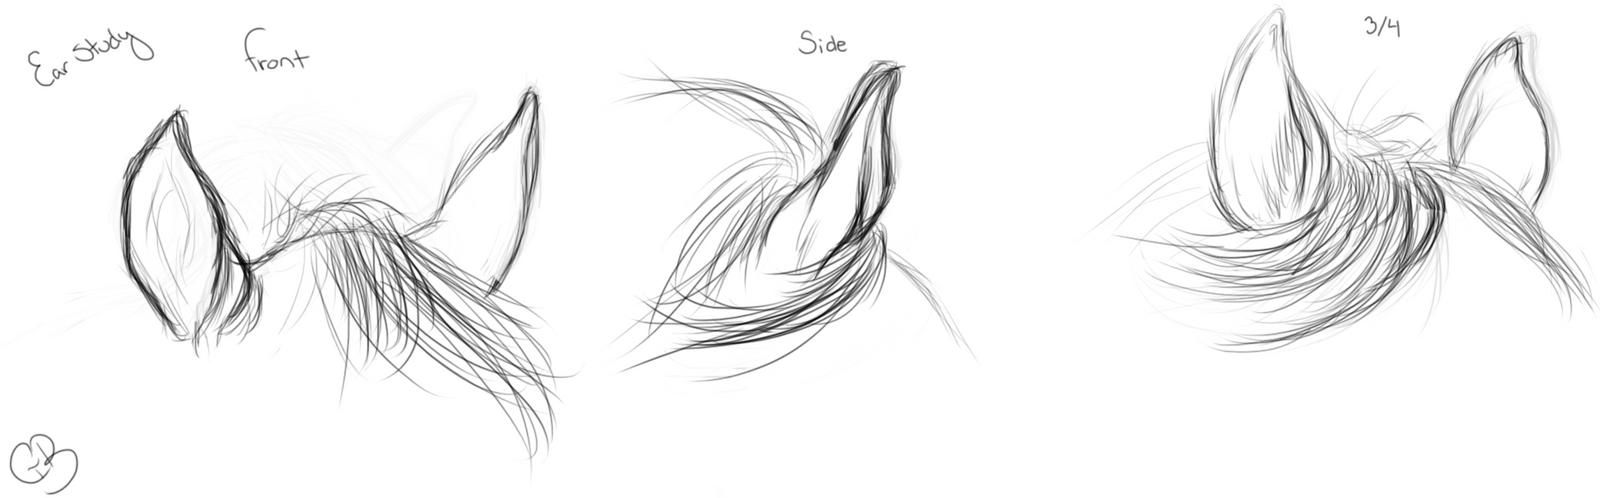 Sketches~ Horse Ear Study by ChellytheBean on DeviantArt Ear Sketches